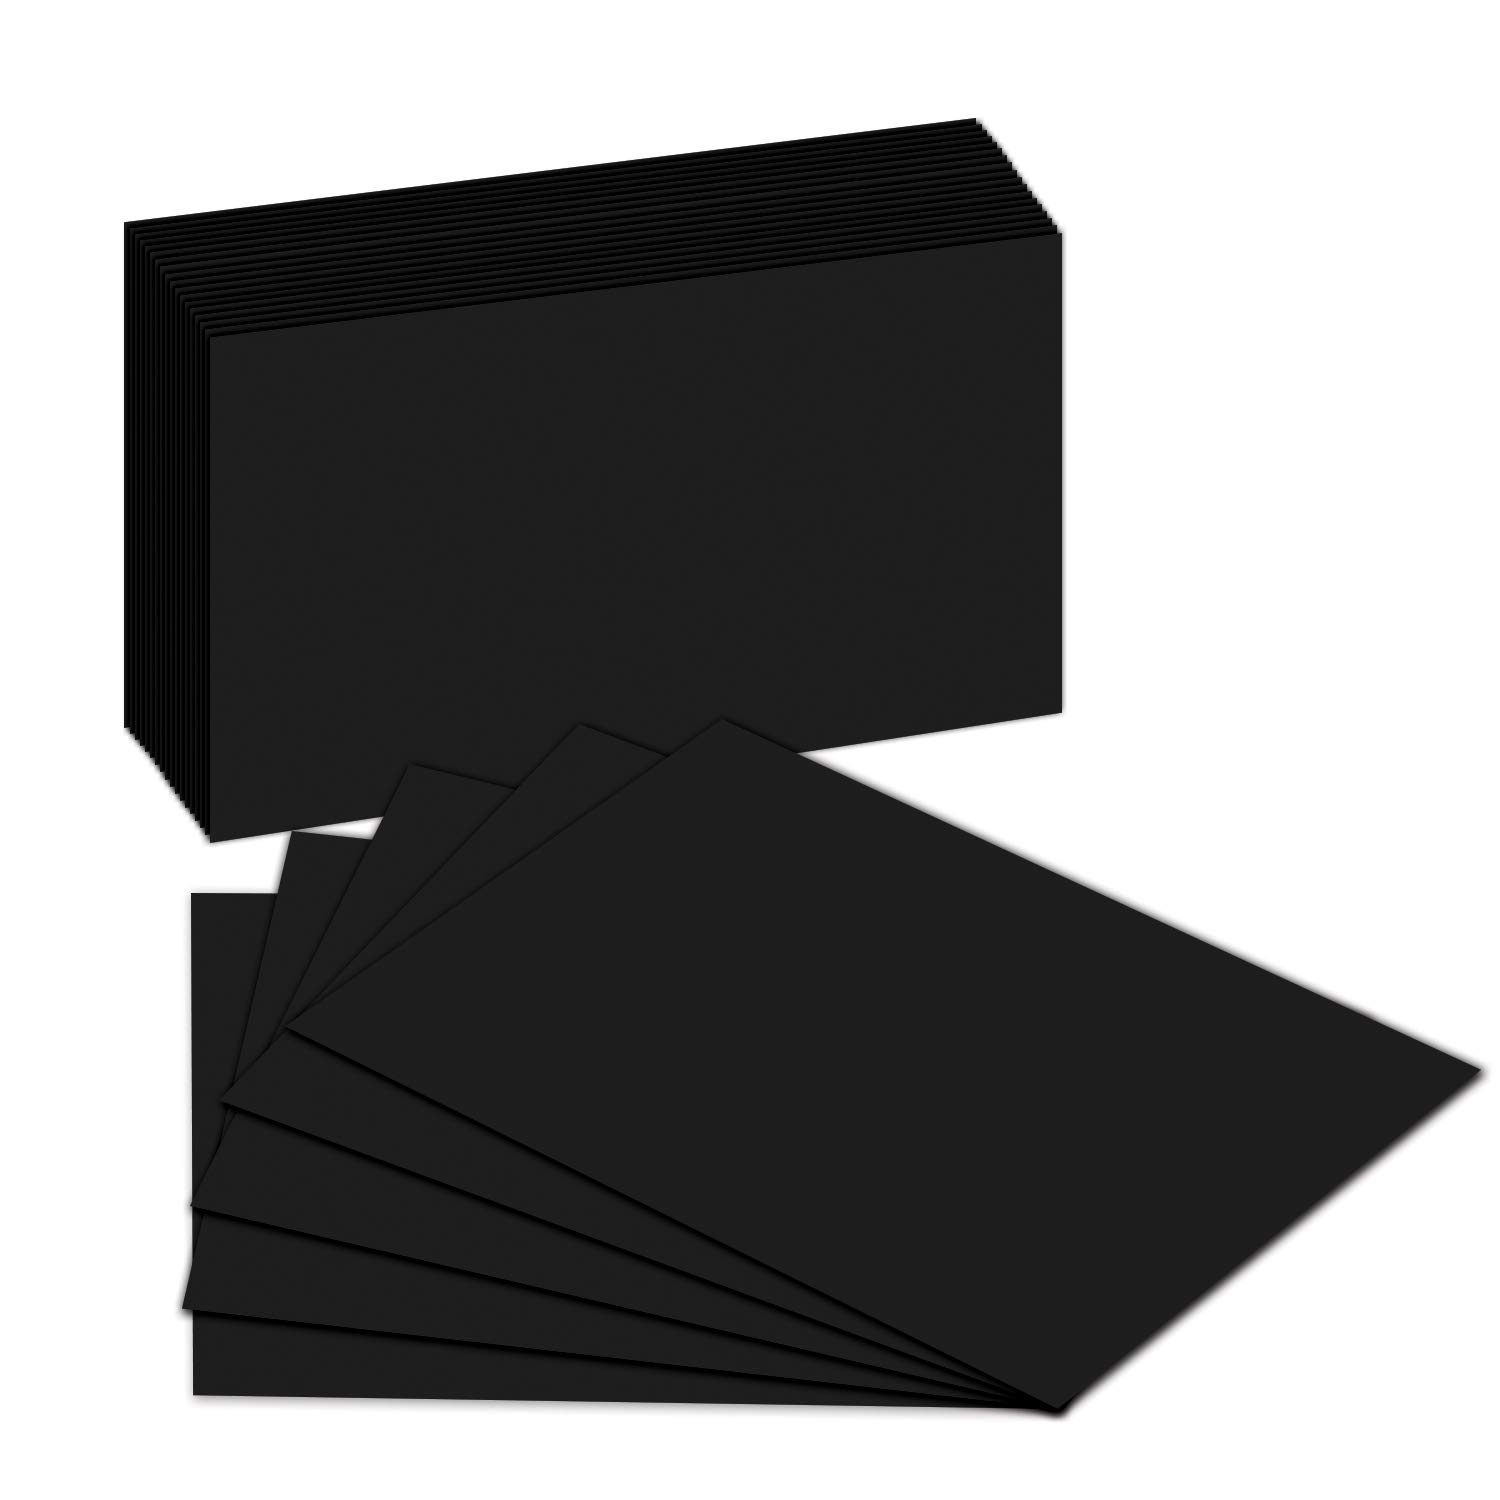 Blank Index Flash Note Cards | Black Colored Cardstock For DYI Greeting & Invitation etc. | 50 Cards Per Pack | 5 x 8